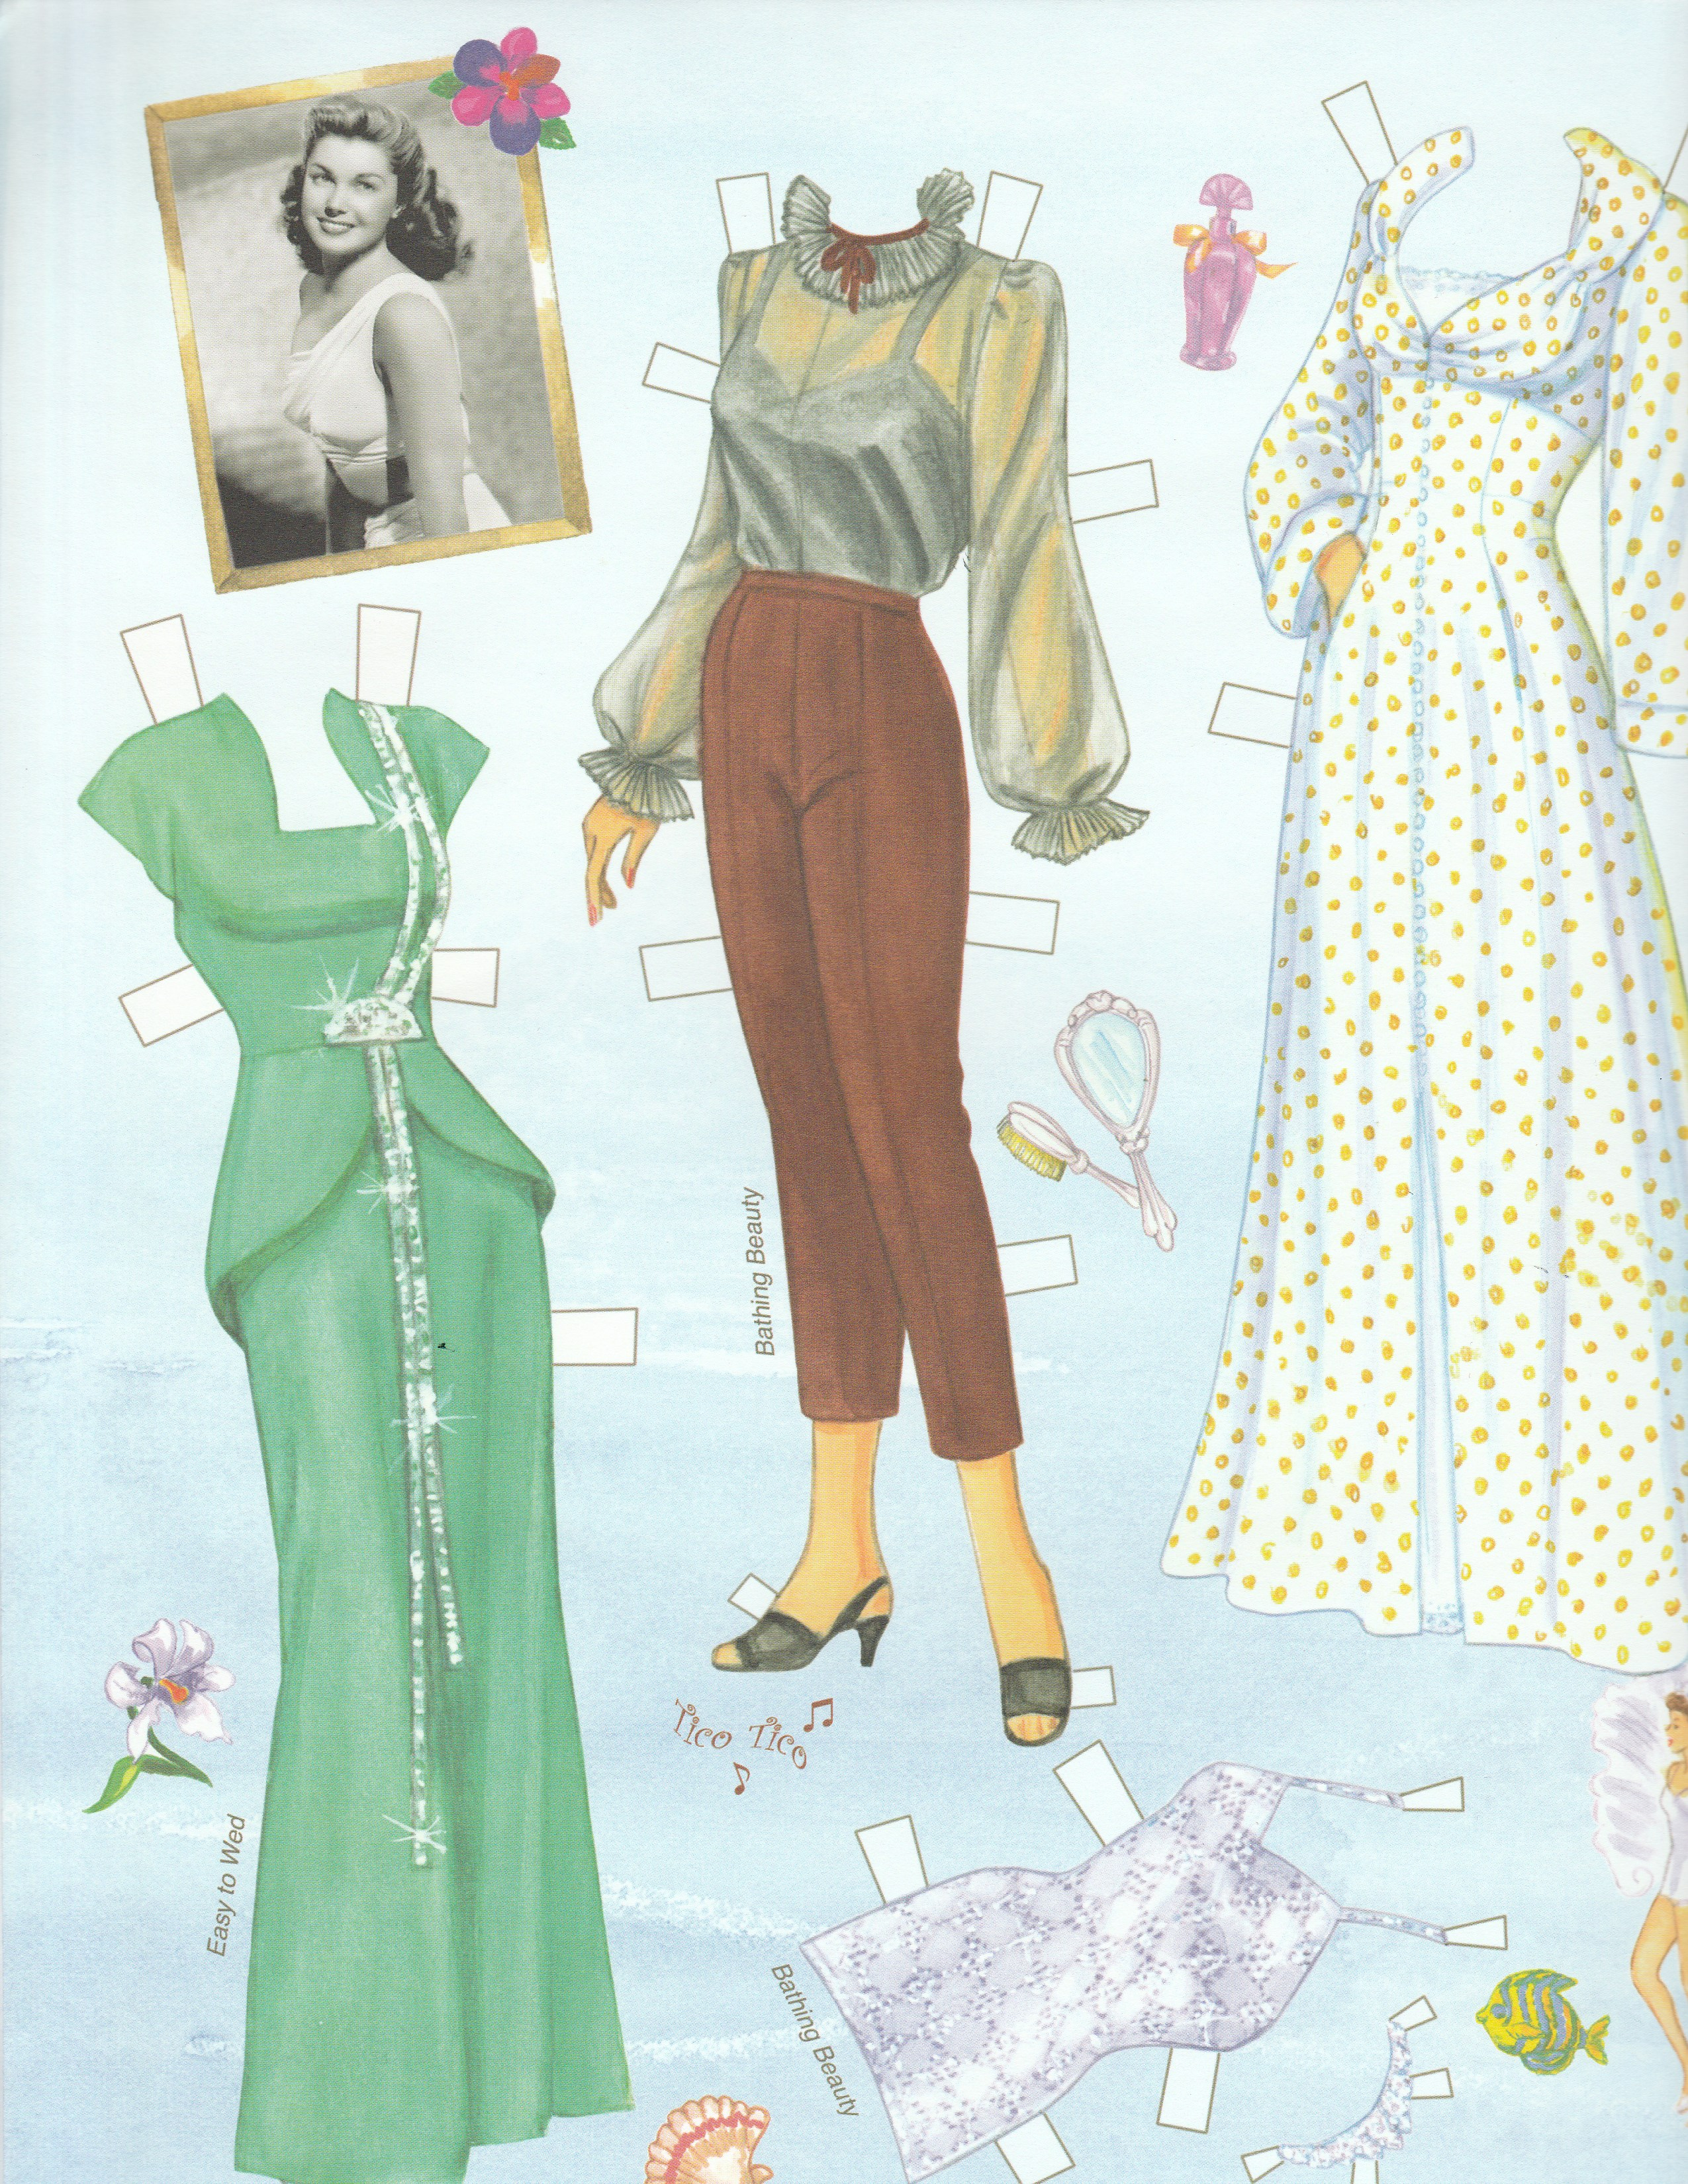 buy paper dolls Judy's place offering paper dolls including dress up paper dolls, vintage paper   was if i had enough change for the next paper doll i wanted to purchase.